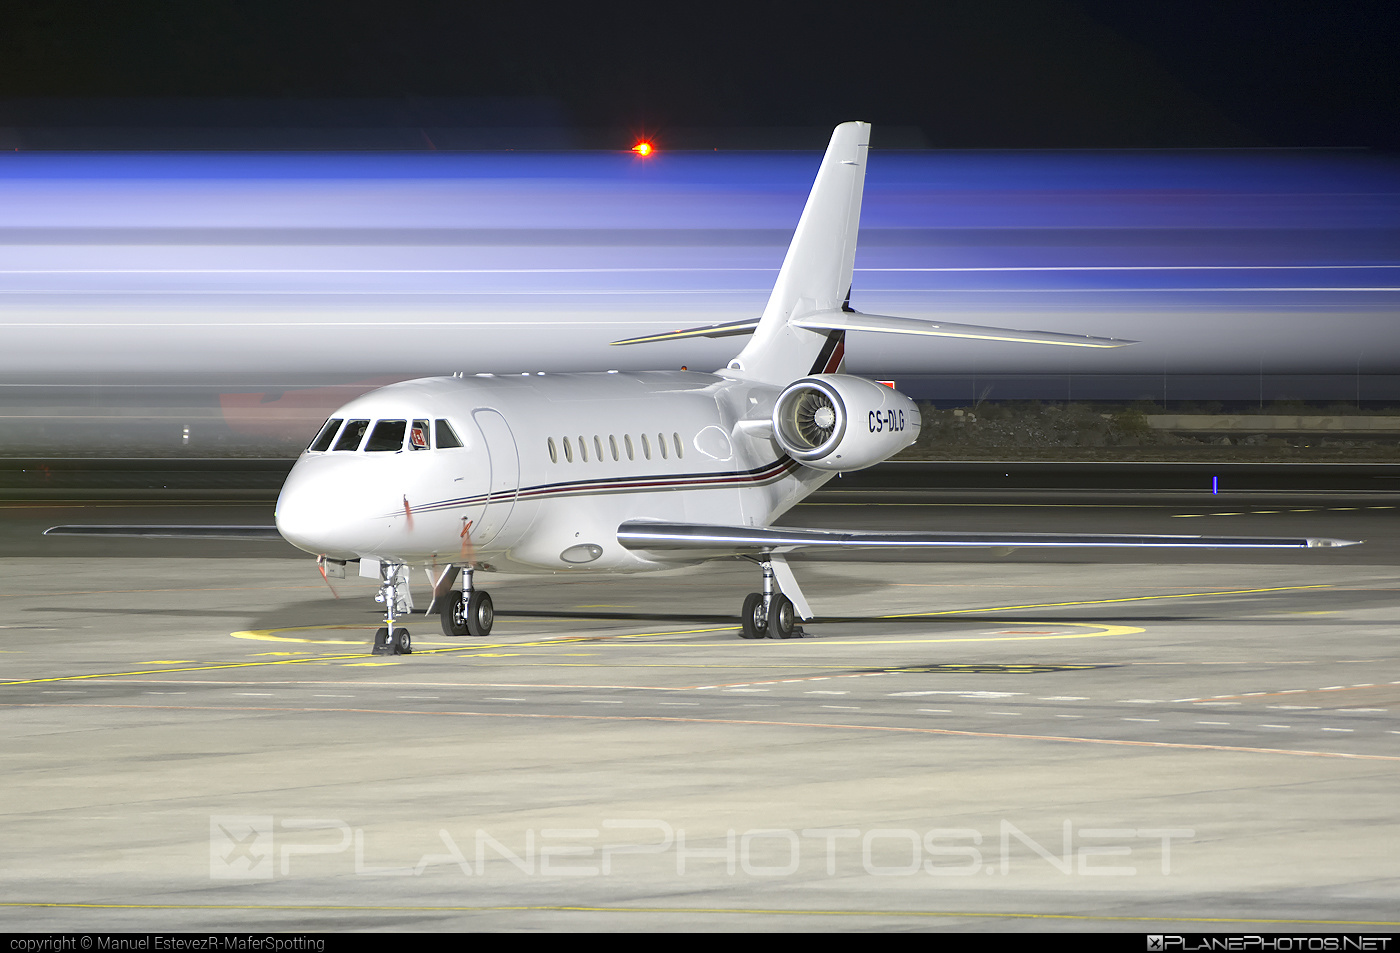 Dassault Falcon 2000EX - CS-DLG operated by NetJets Europe #dassault #dassaultfalcon #dassaultfalcon2000 #dassaultfalcon2000ex #falcon2000 #falcon2000ex